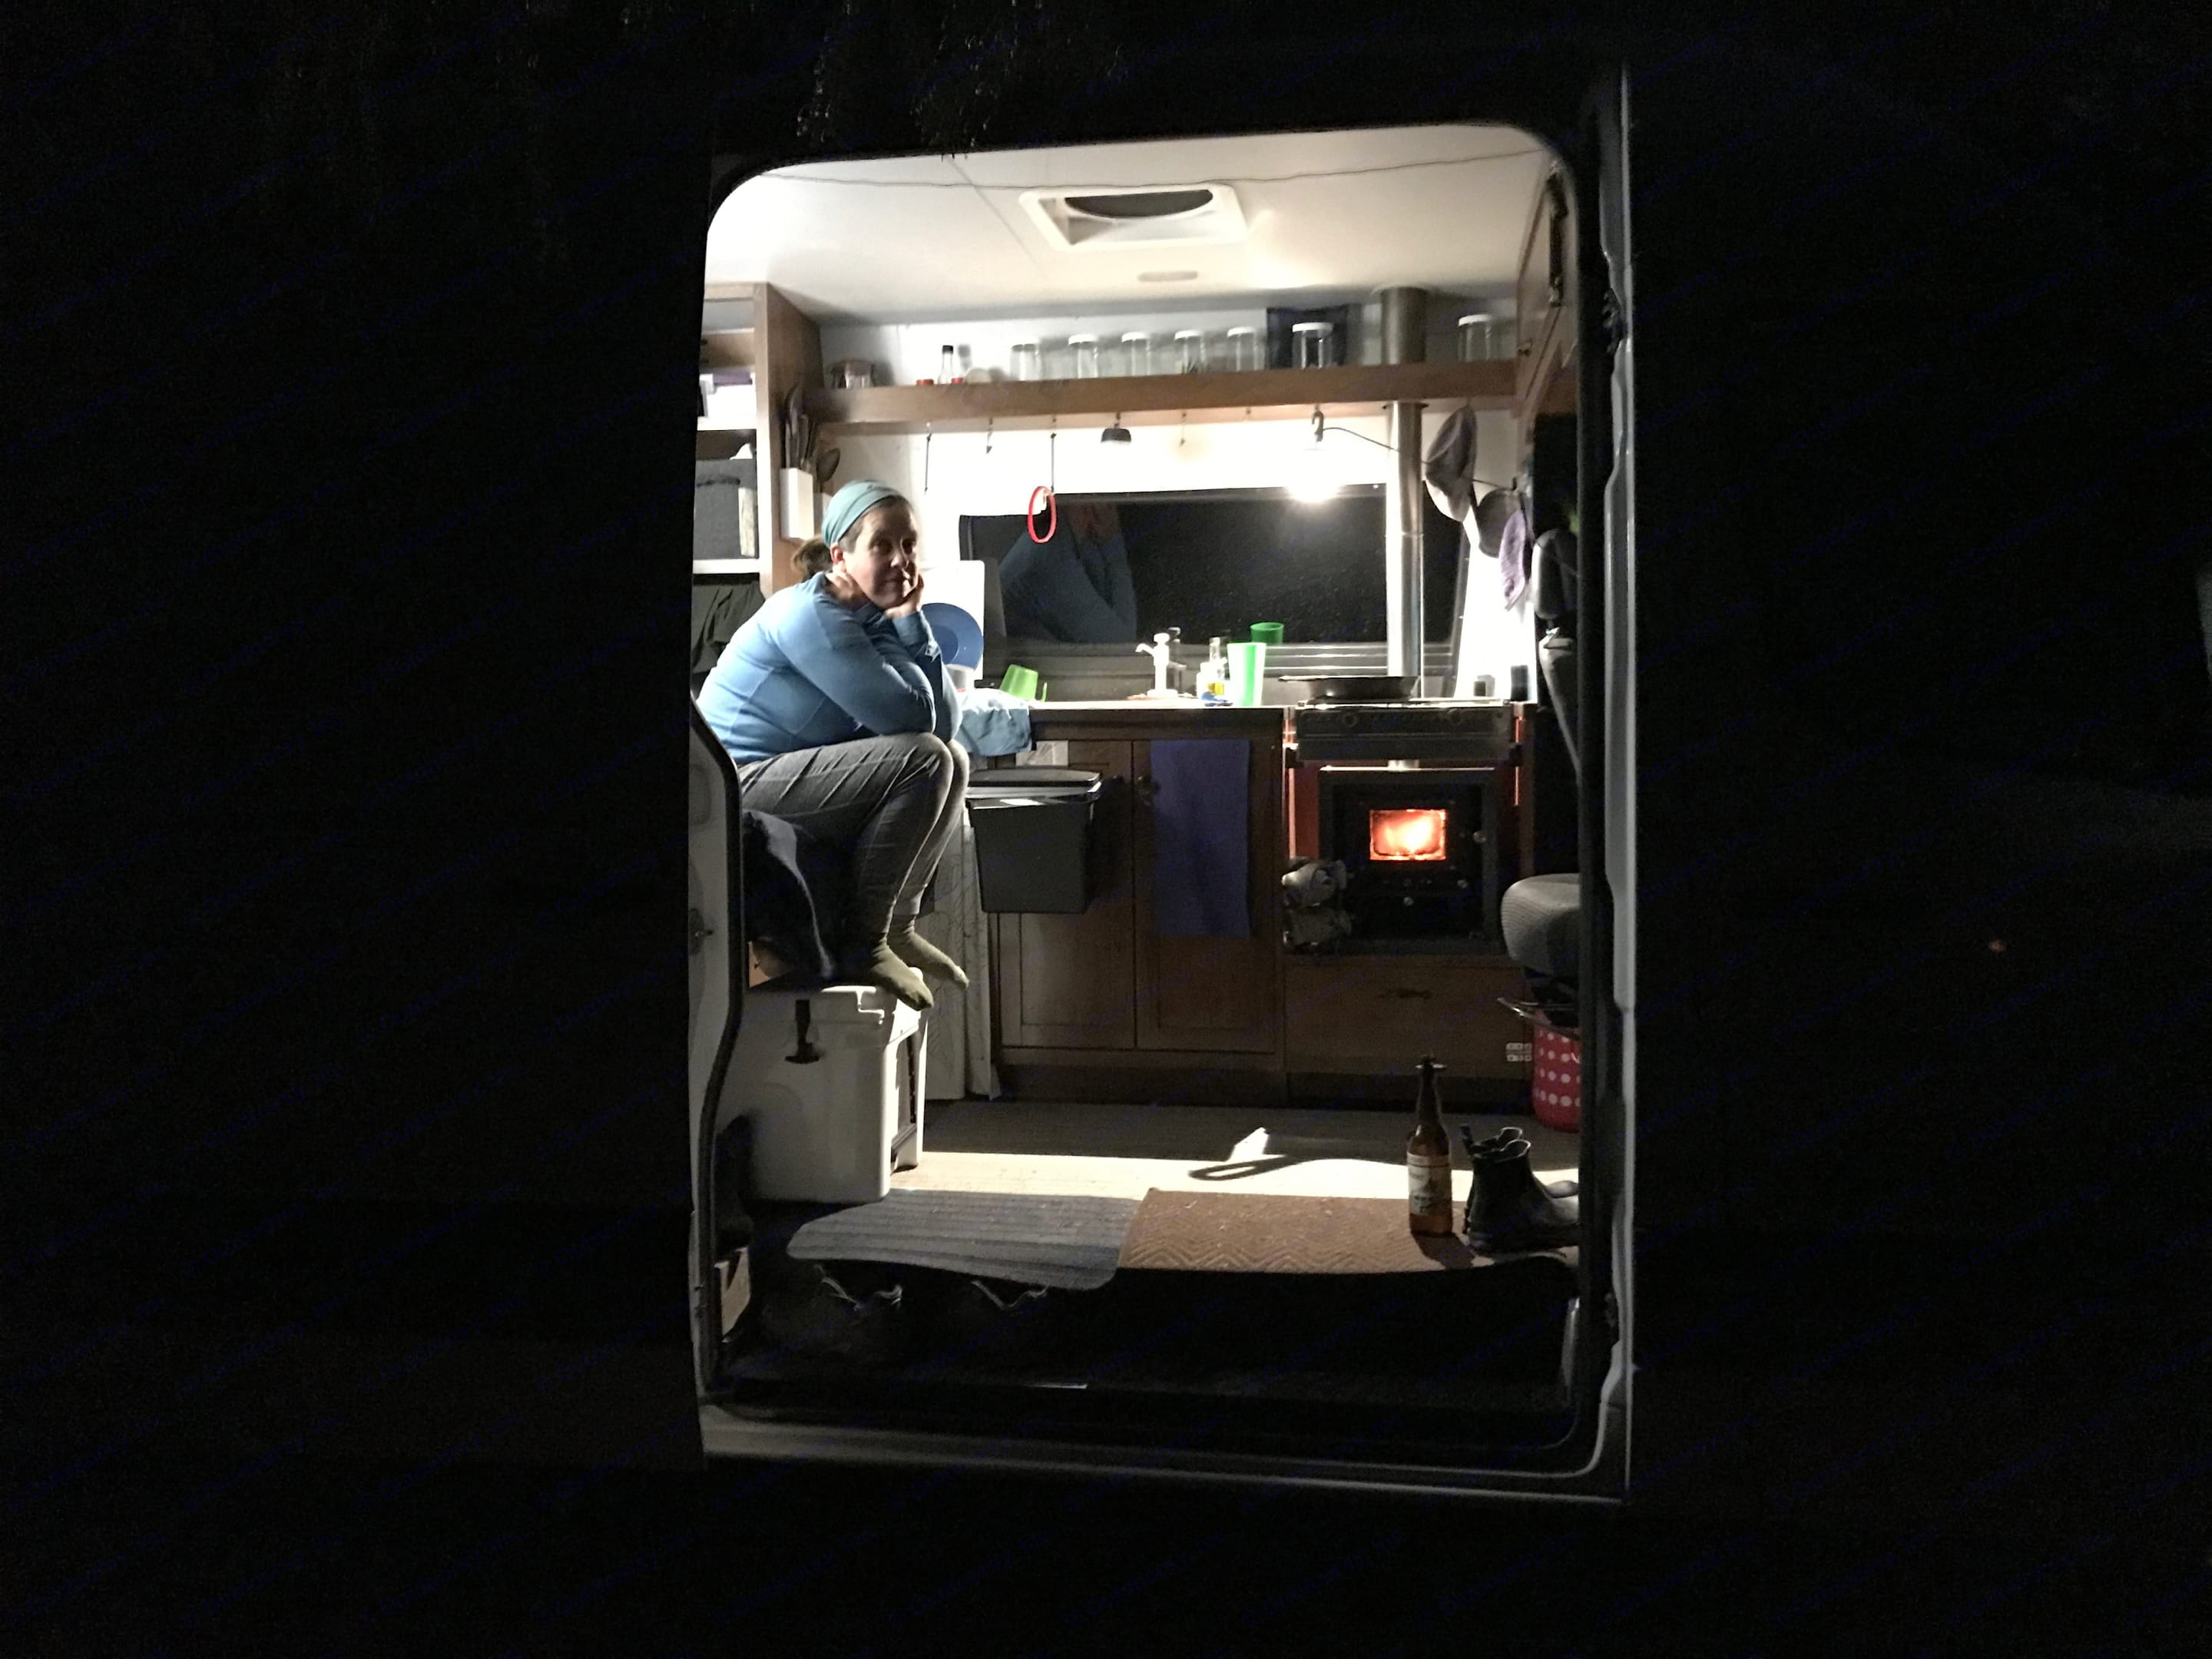 Yes that is a wood stove, perfect for cold nights. Dodge Sprinter Van 2008